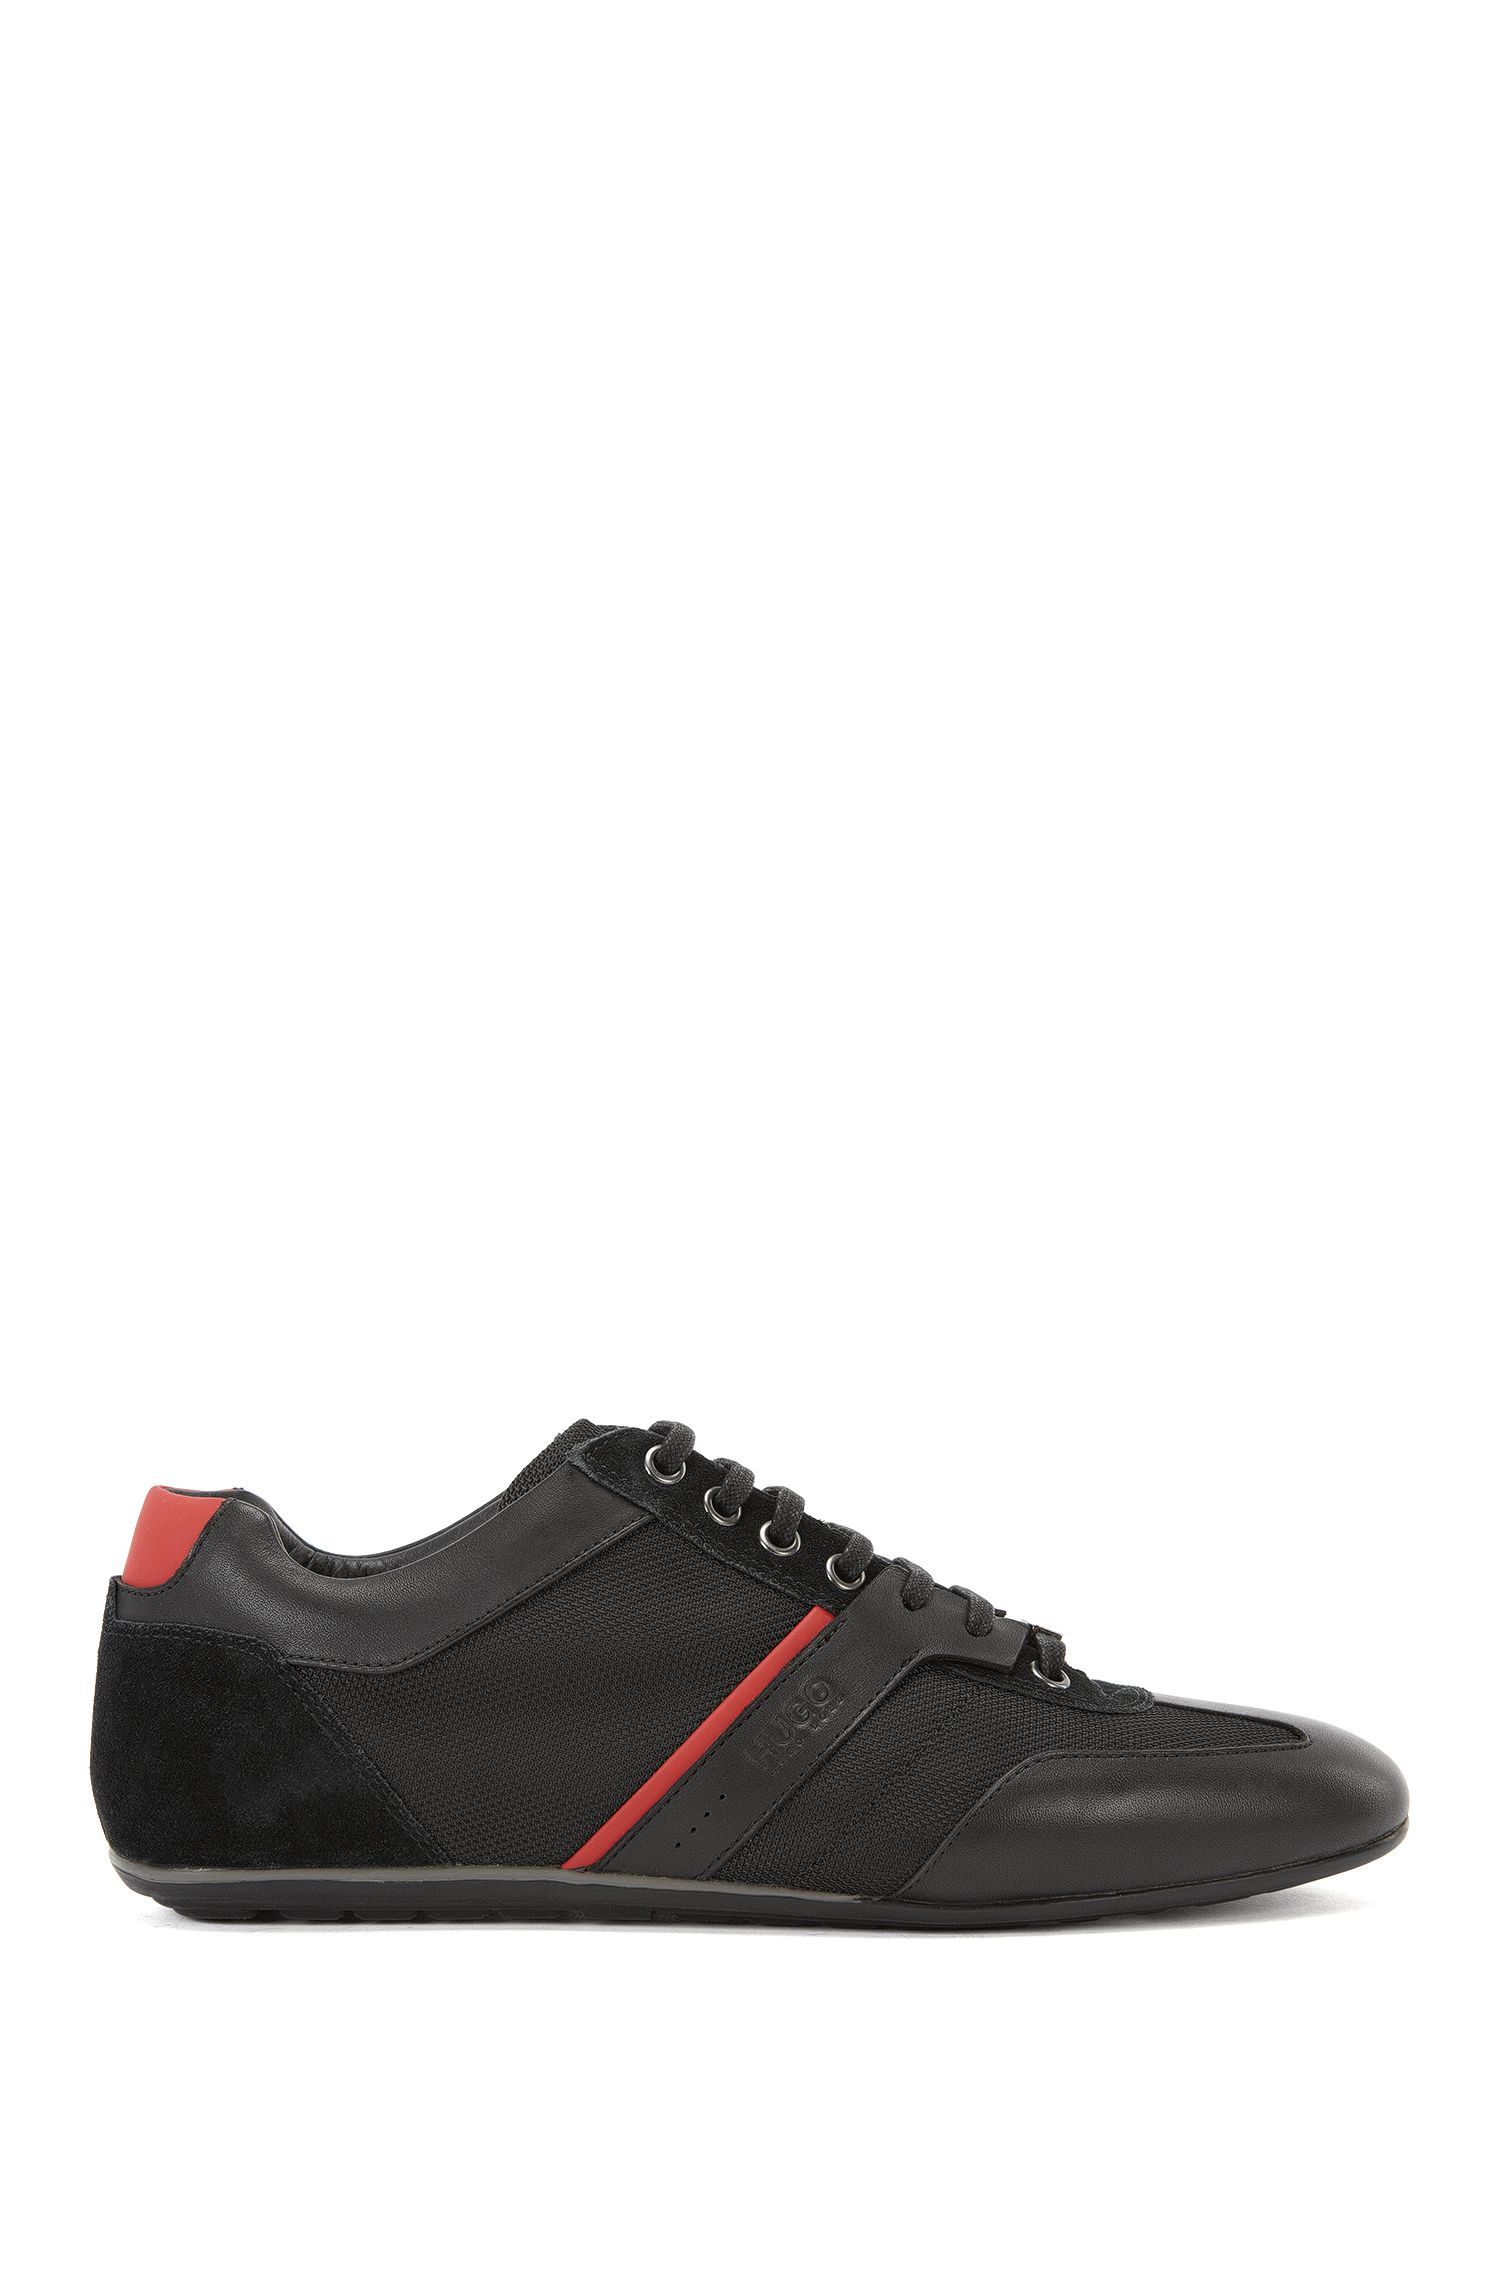 Low-top trainers with leather overlays